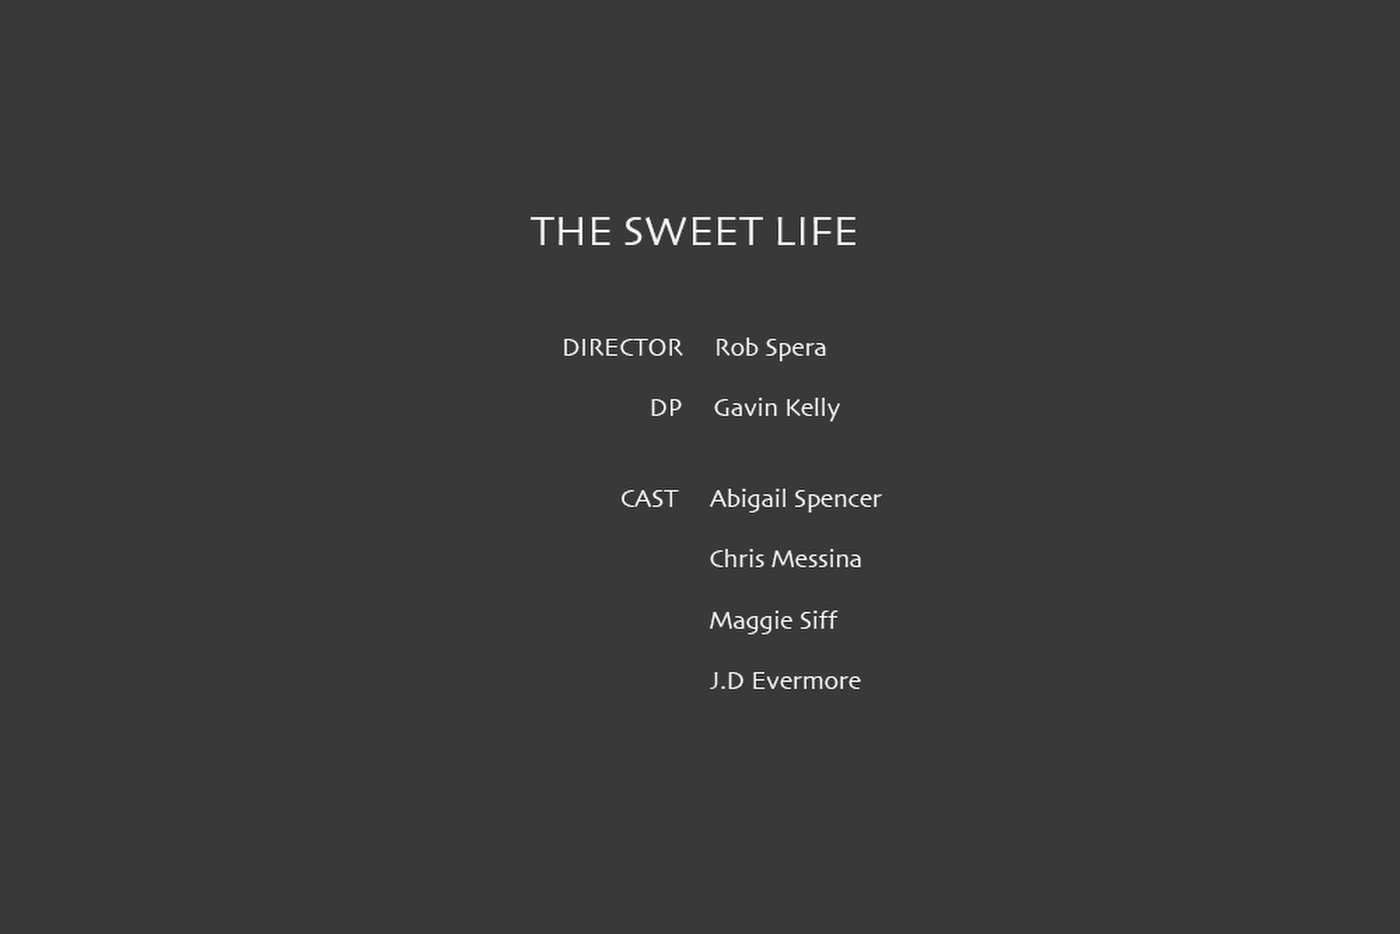 TheSweetLife_text